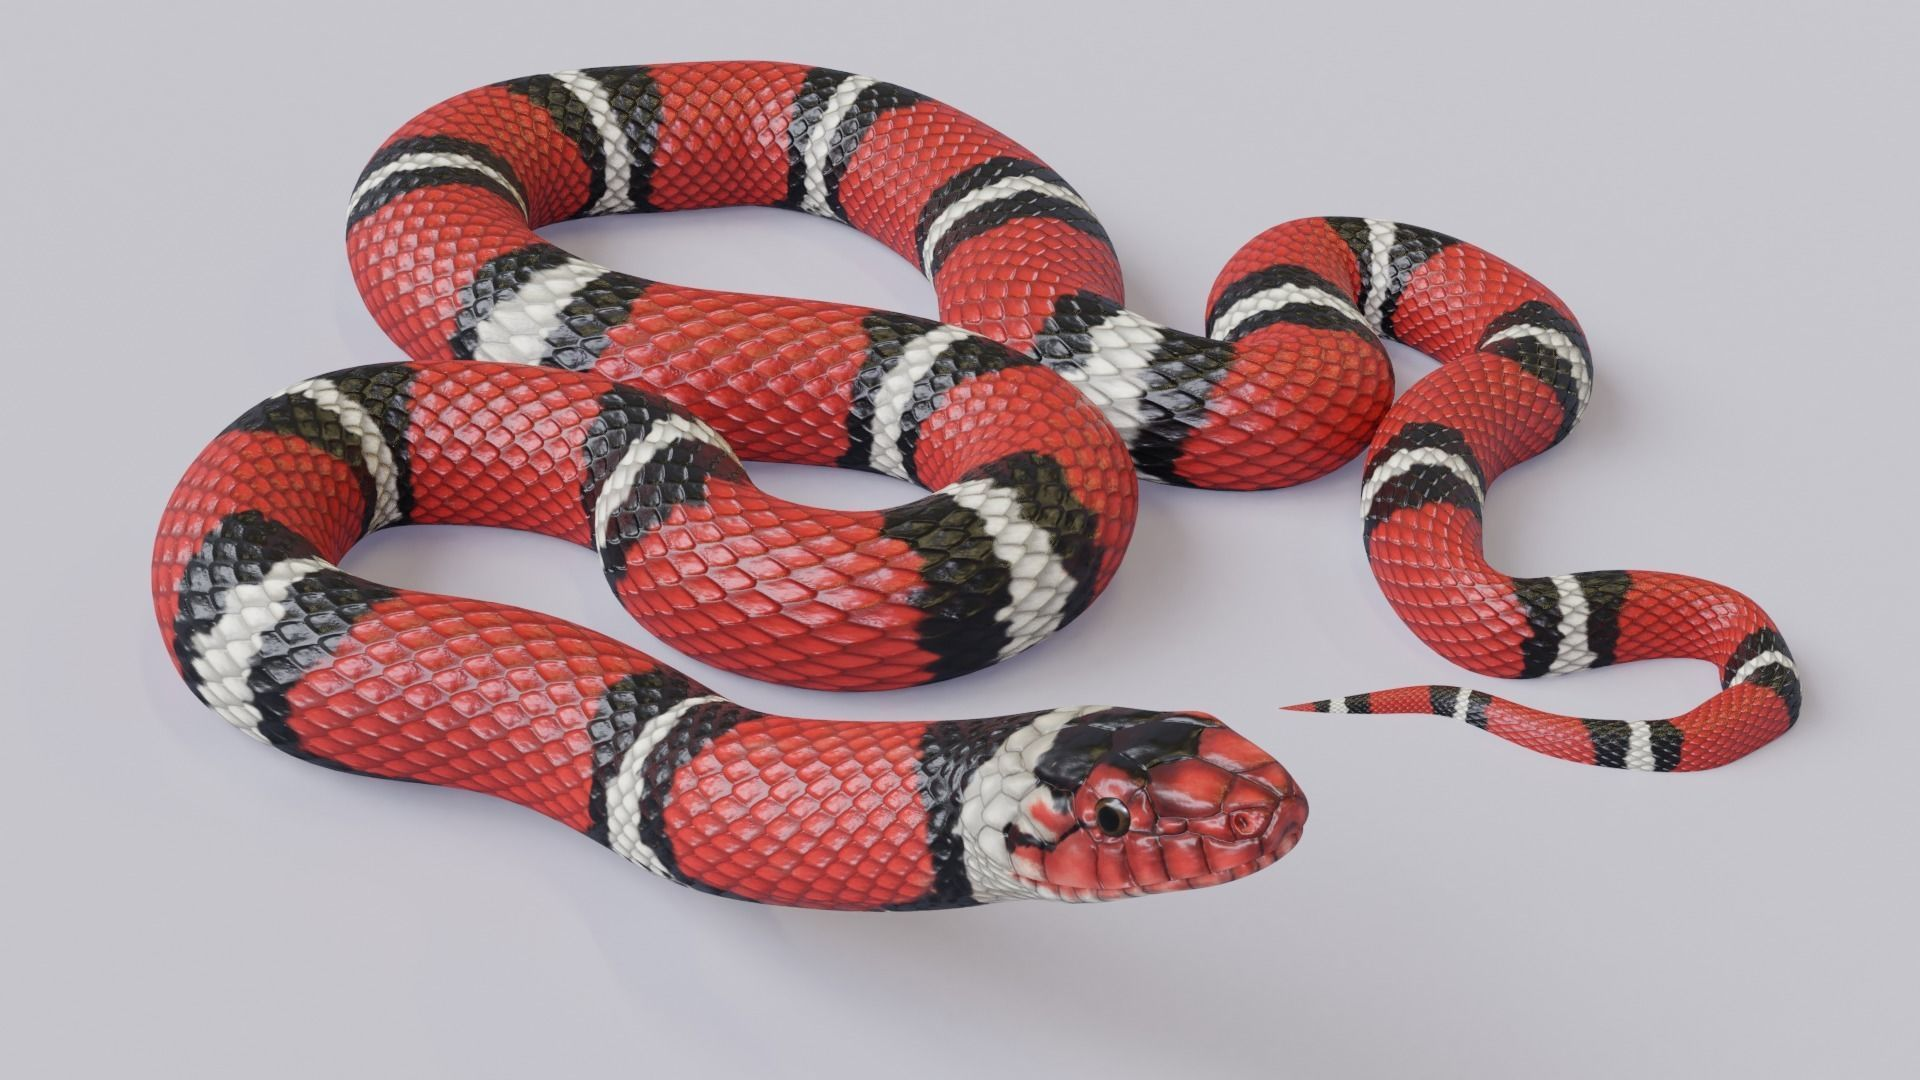 Animated Scarlet Kingsnake